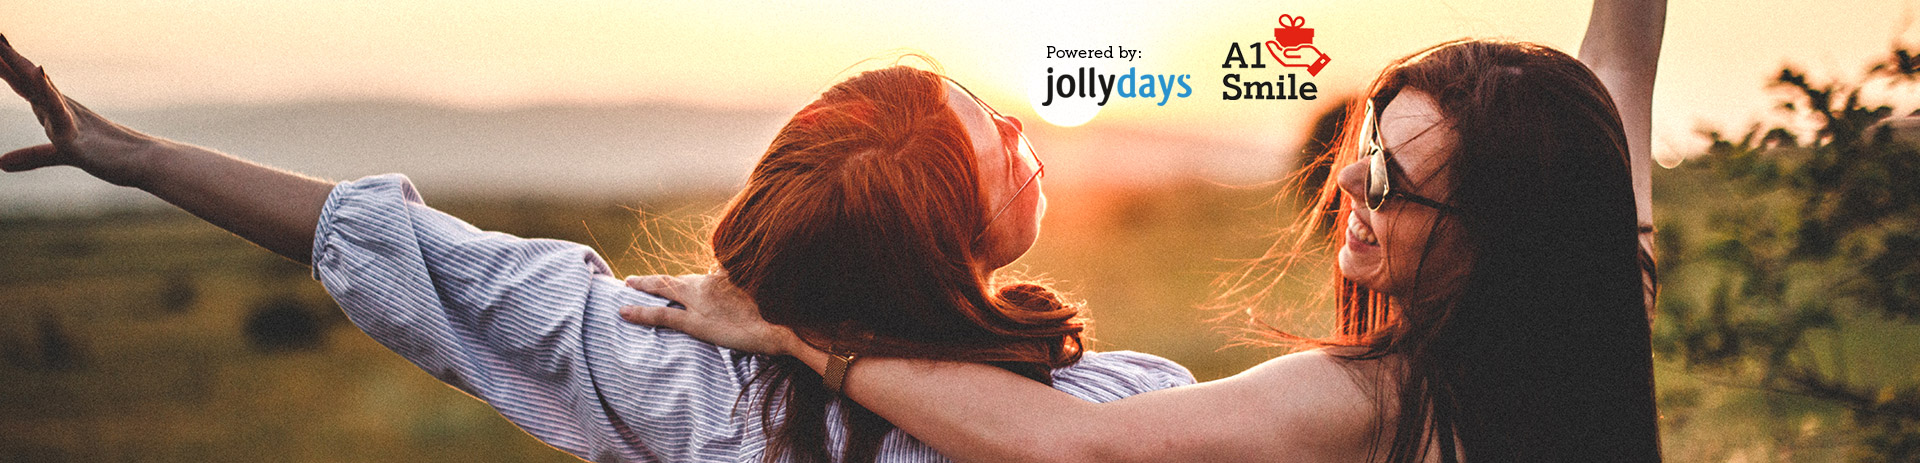 A1 Smile powered by Jollydays